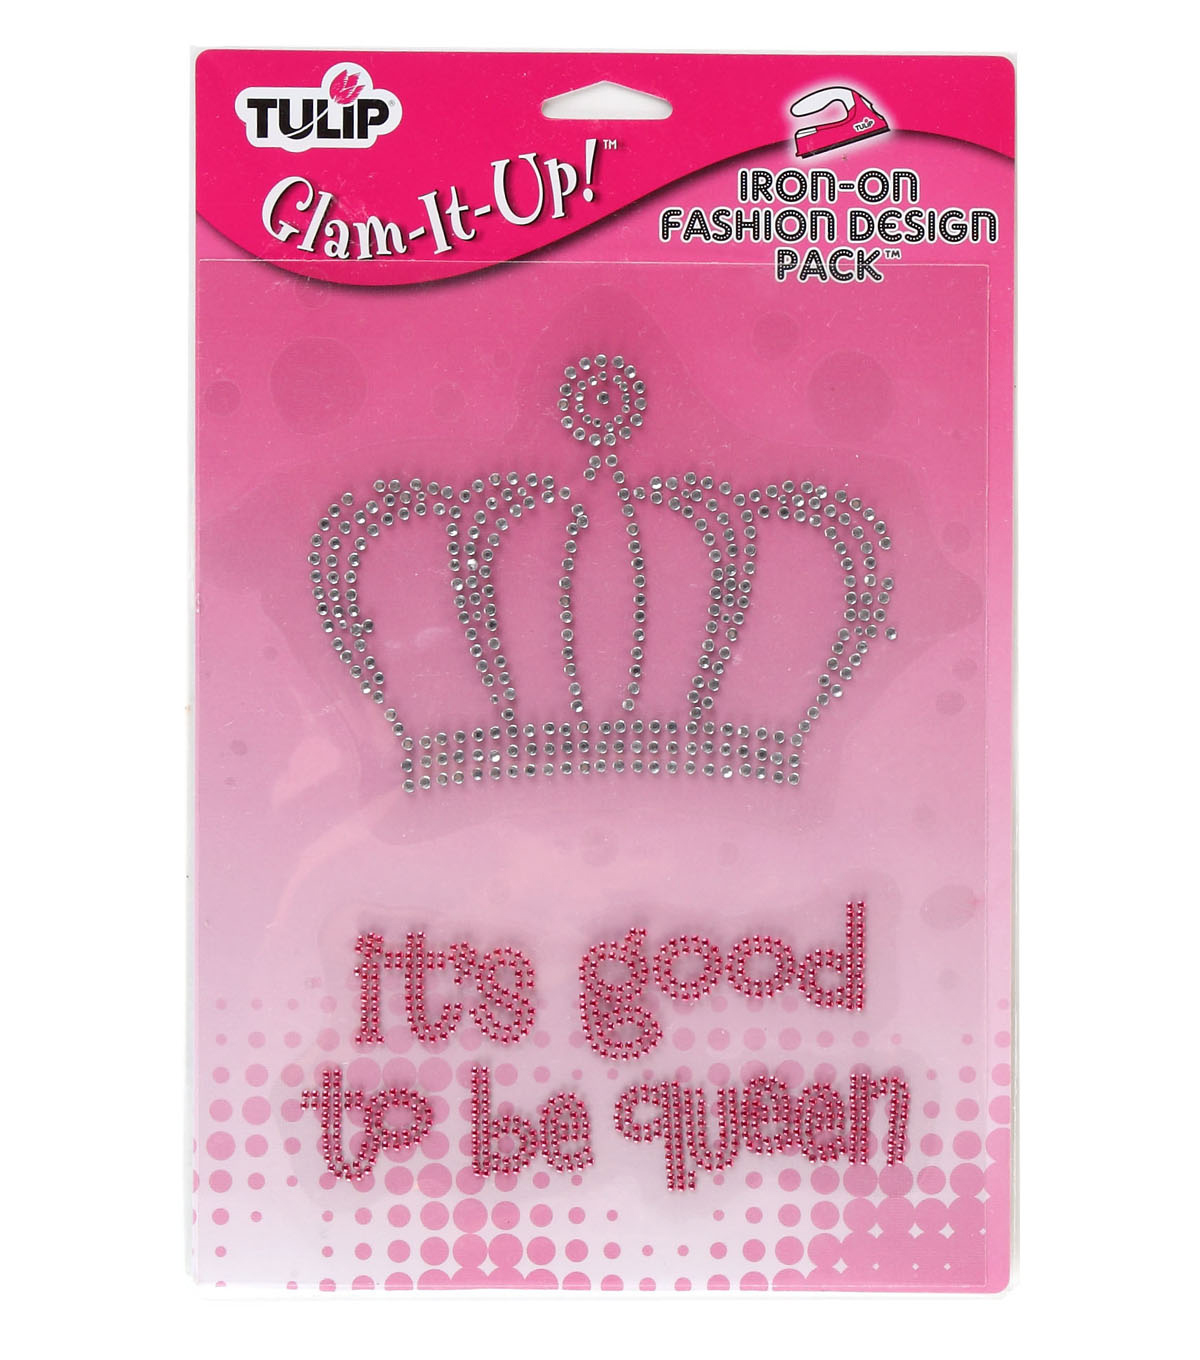 Tulip Glam-It-Up! Iron On Large Pack-Queen